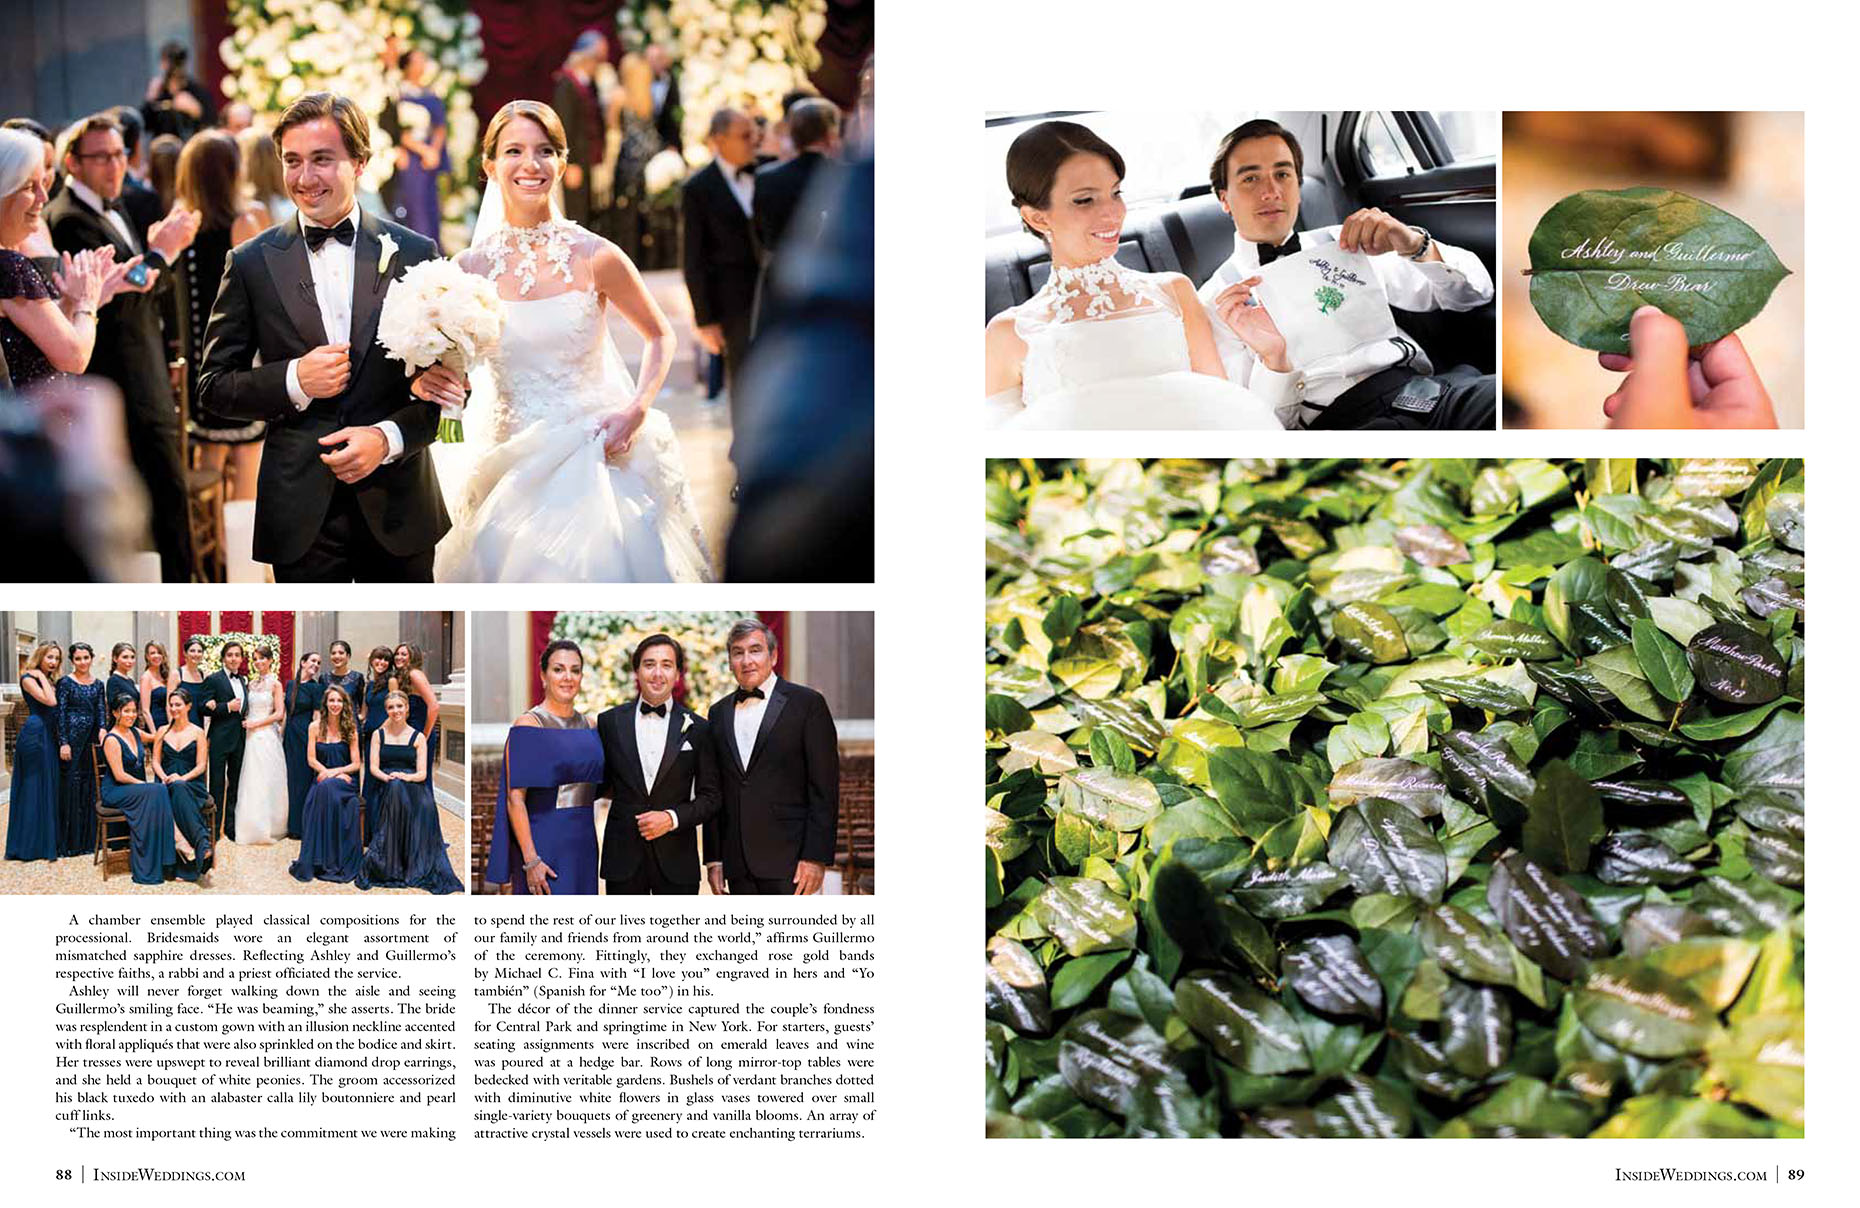 112_InsideWeddings_Spread3_summer2015